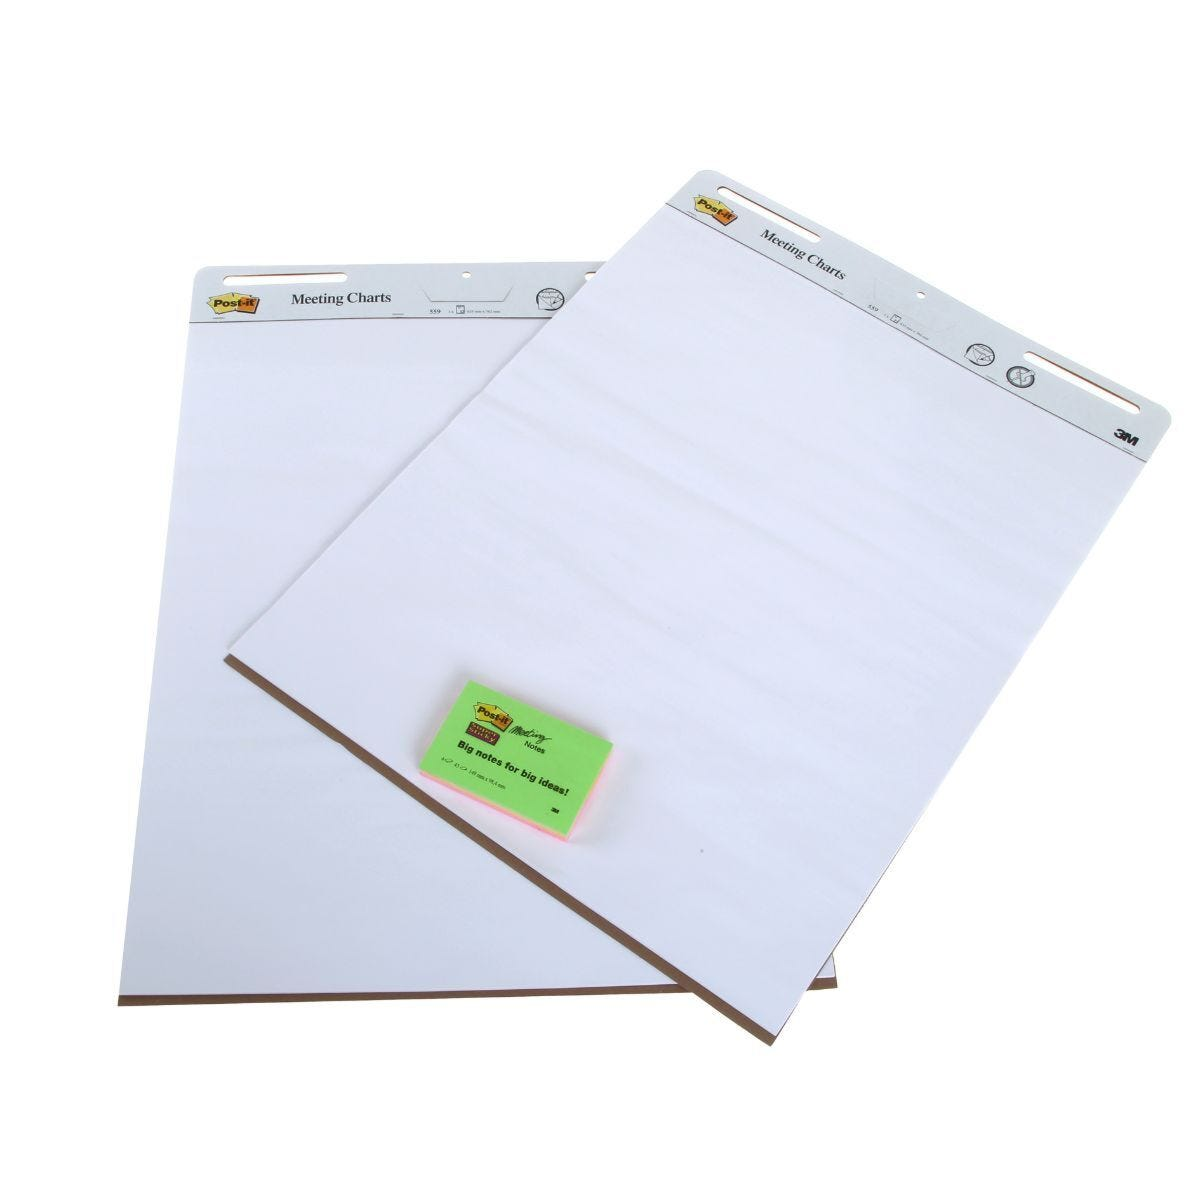 Post-It Meeting Chart Super Sticky Pack of 2 Plus free Post It Notes